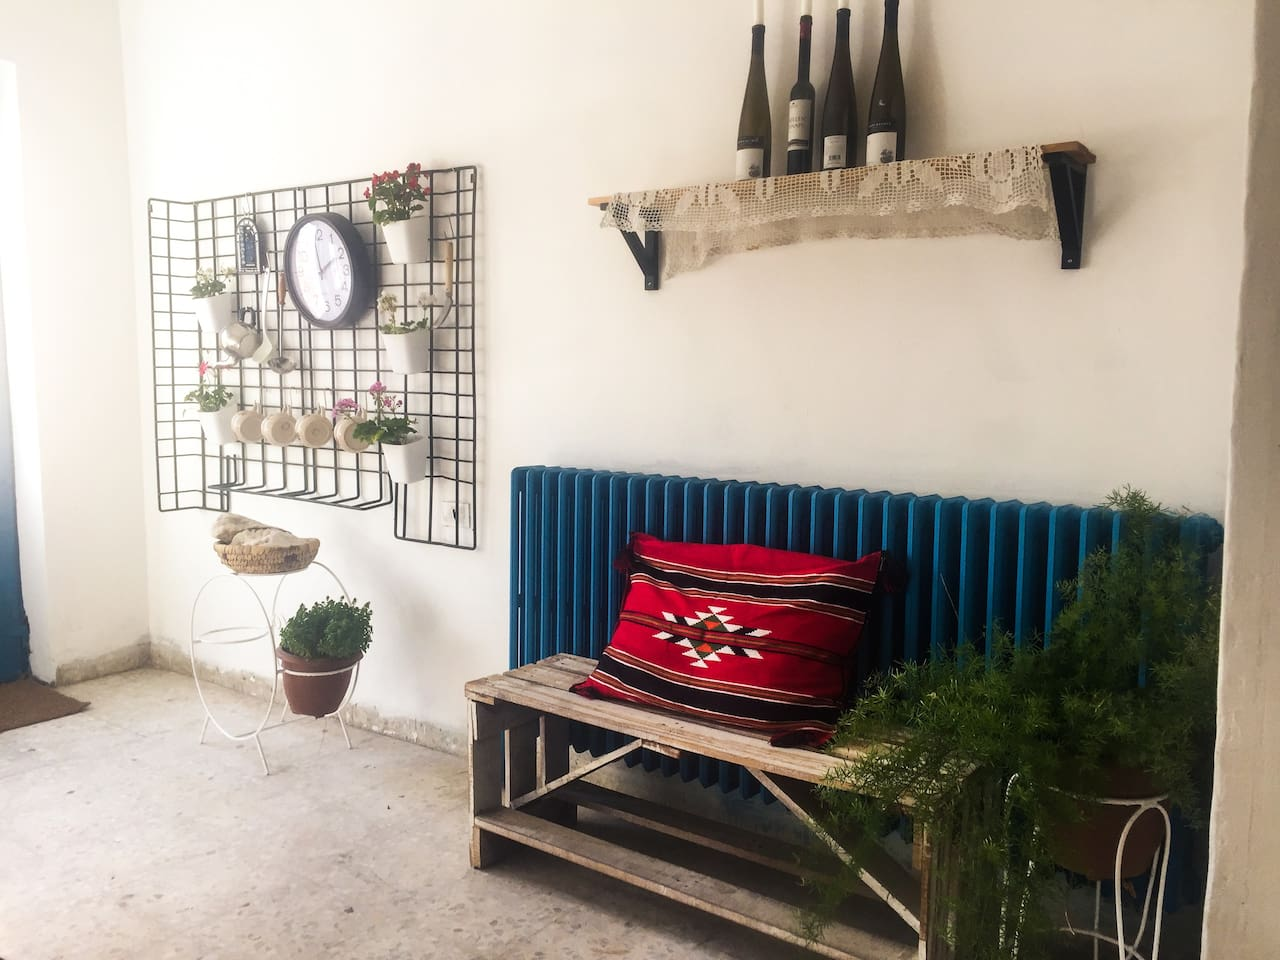 This apartment was part of a villa built in 1960 then converted to building in the 80's, I did the renovations my self, colors and mood are Mediterranean inspired, with a hint of Bedouin textiles.